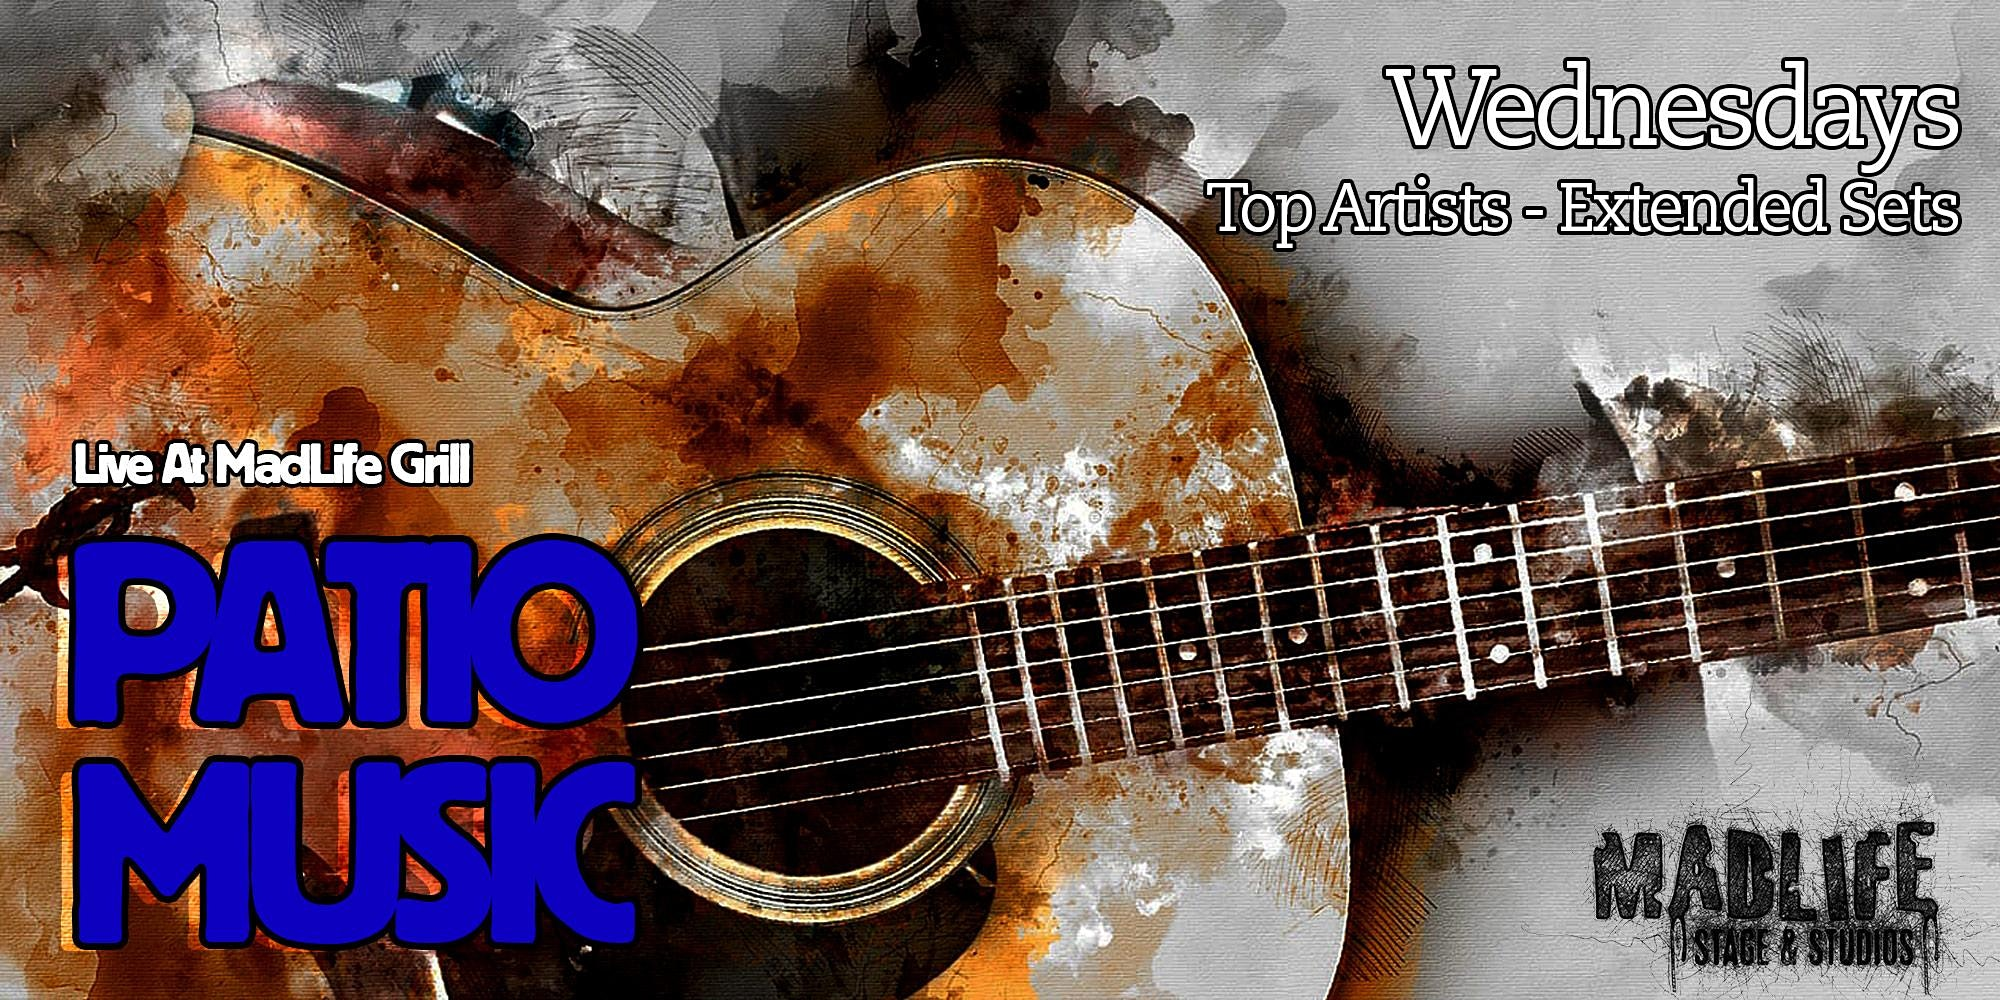 WED Patio Music Top Artists — Extended Sets Hosted by Greg Shaddix